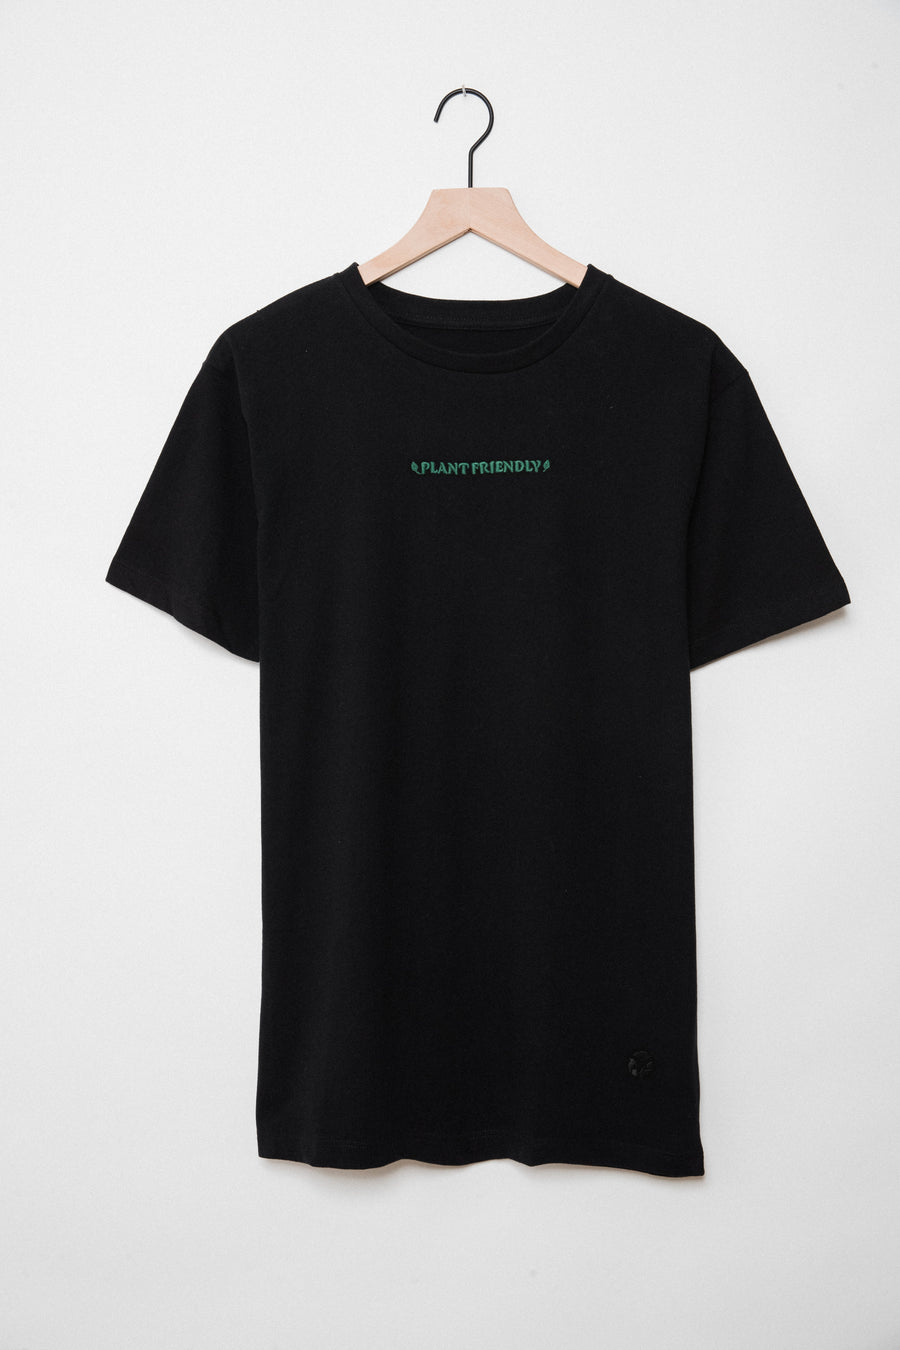 Plant Friendly Tee